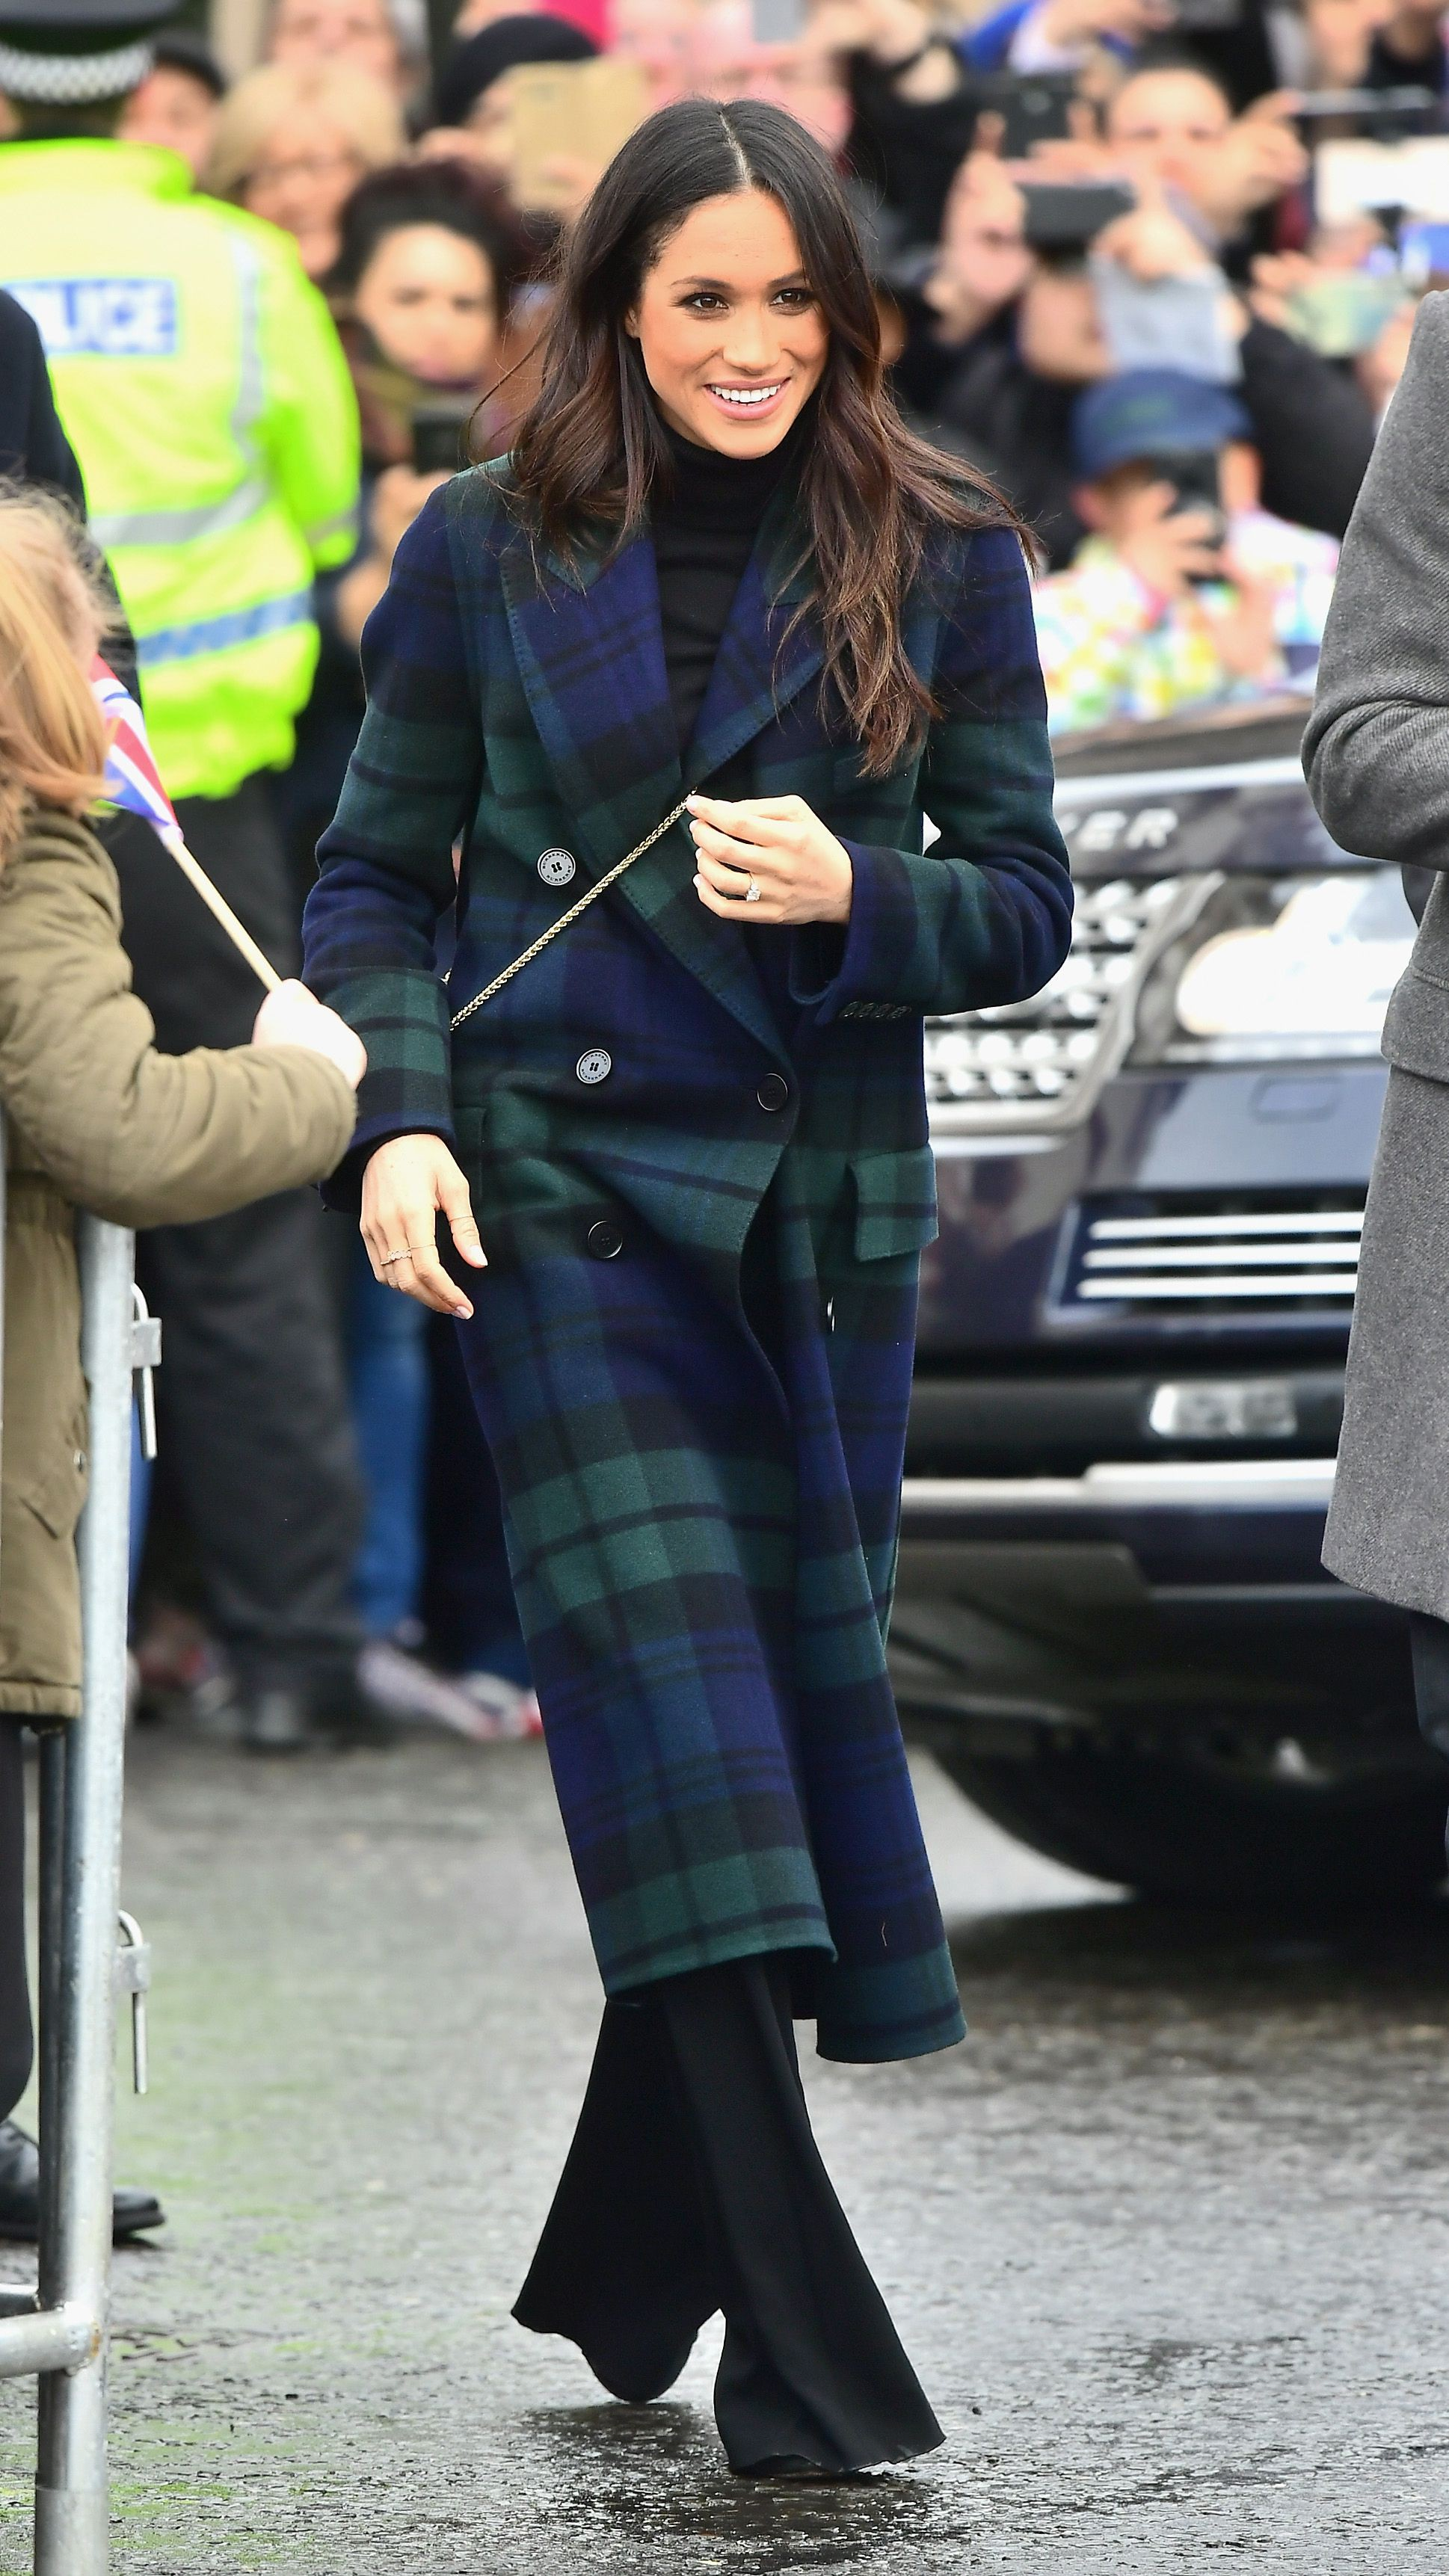 hbz-meghan-markle-0218-gettyimages-917718532-1522104132